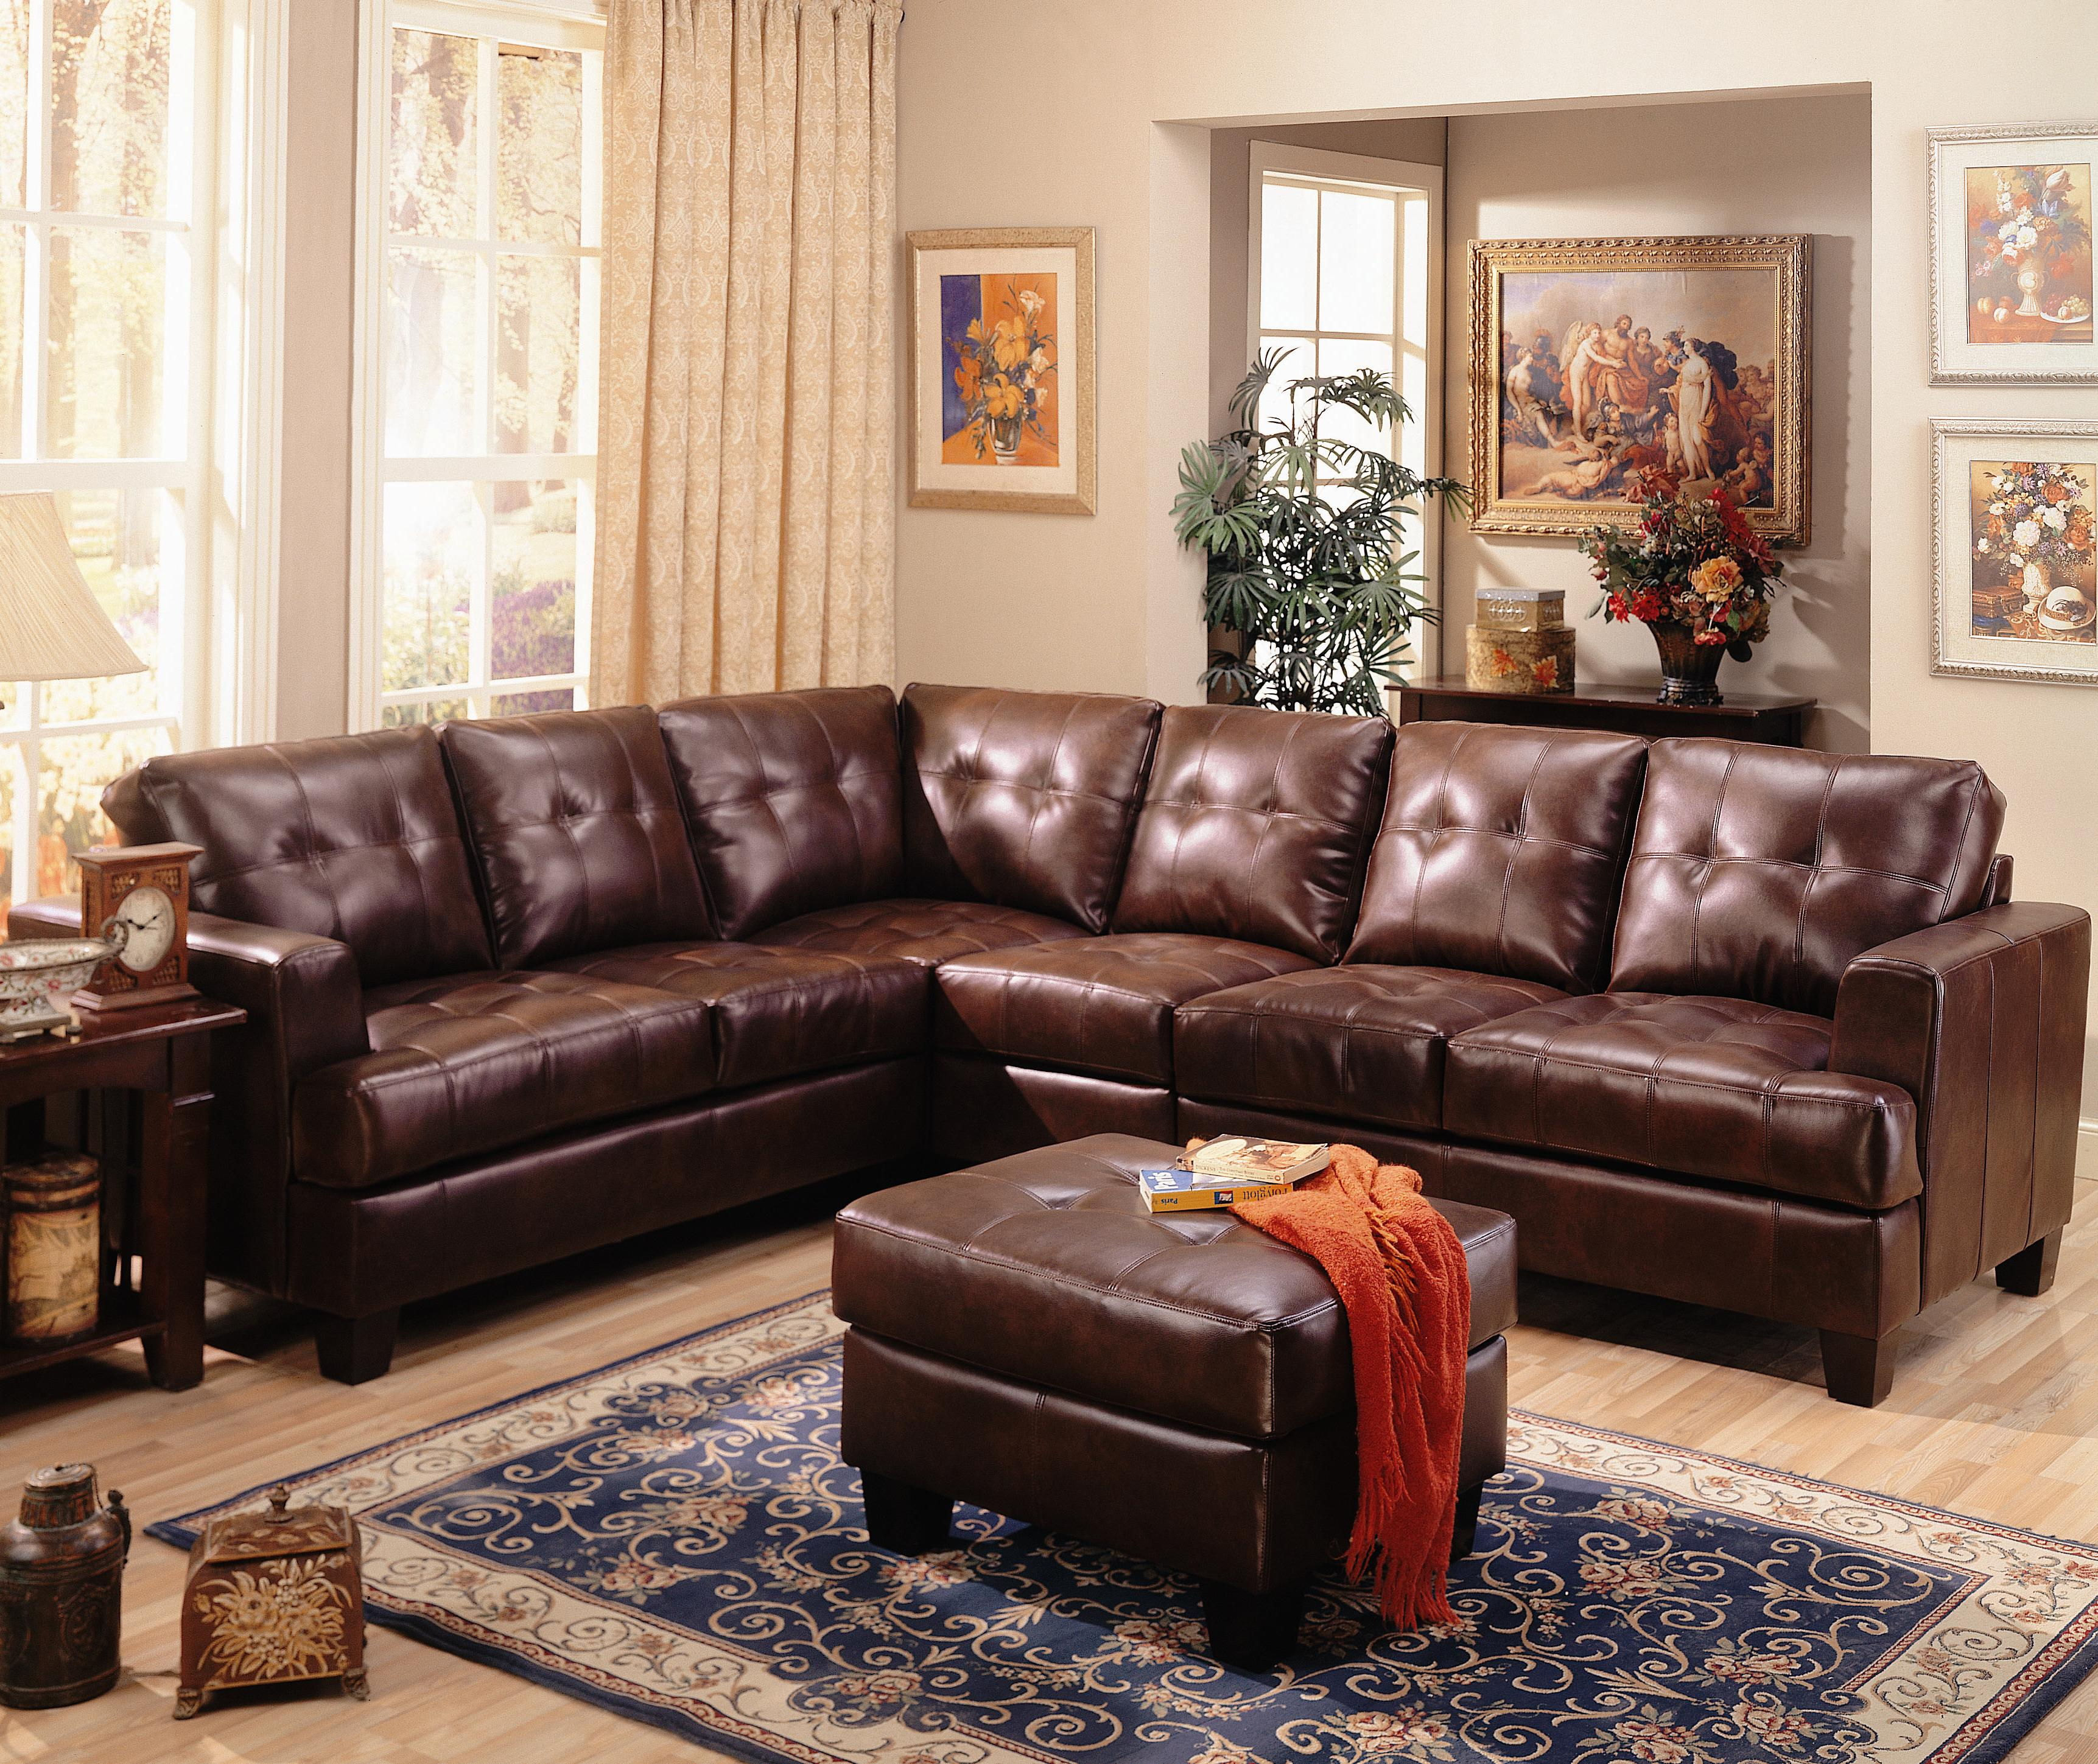 Samuel Contemporary Leather Sectional Sofa